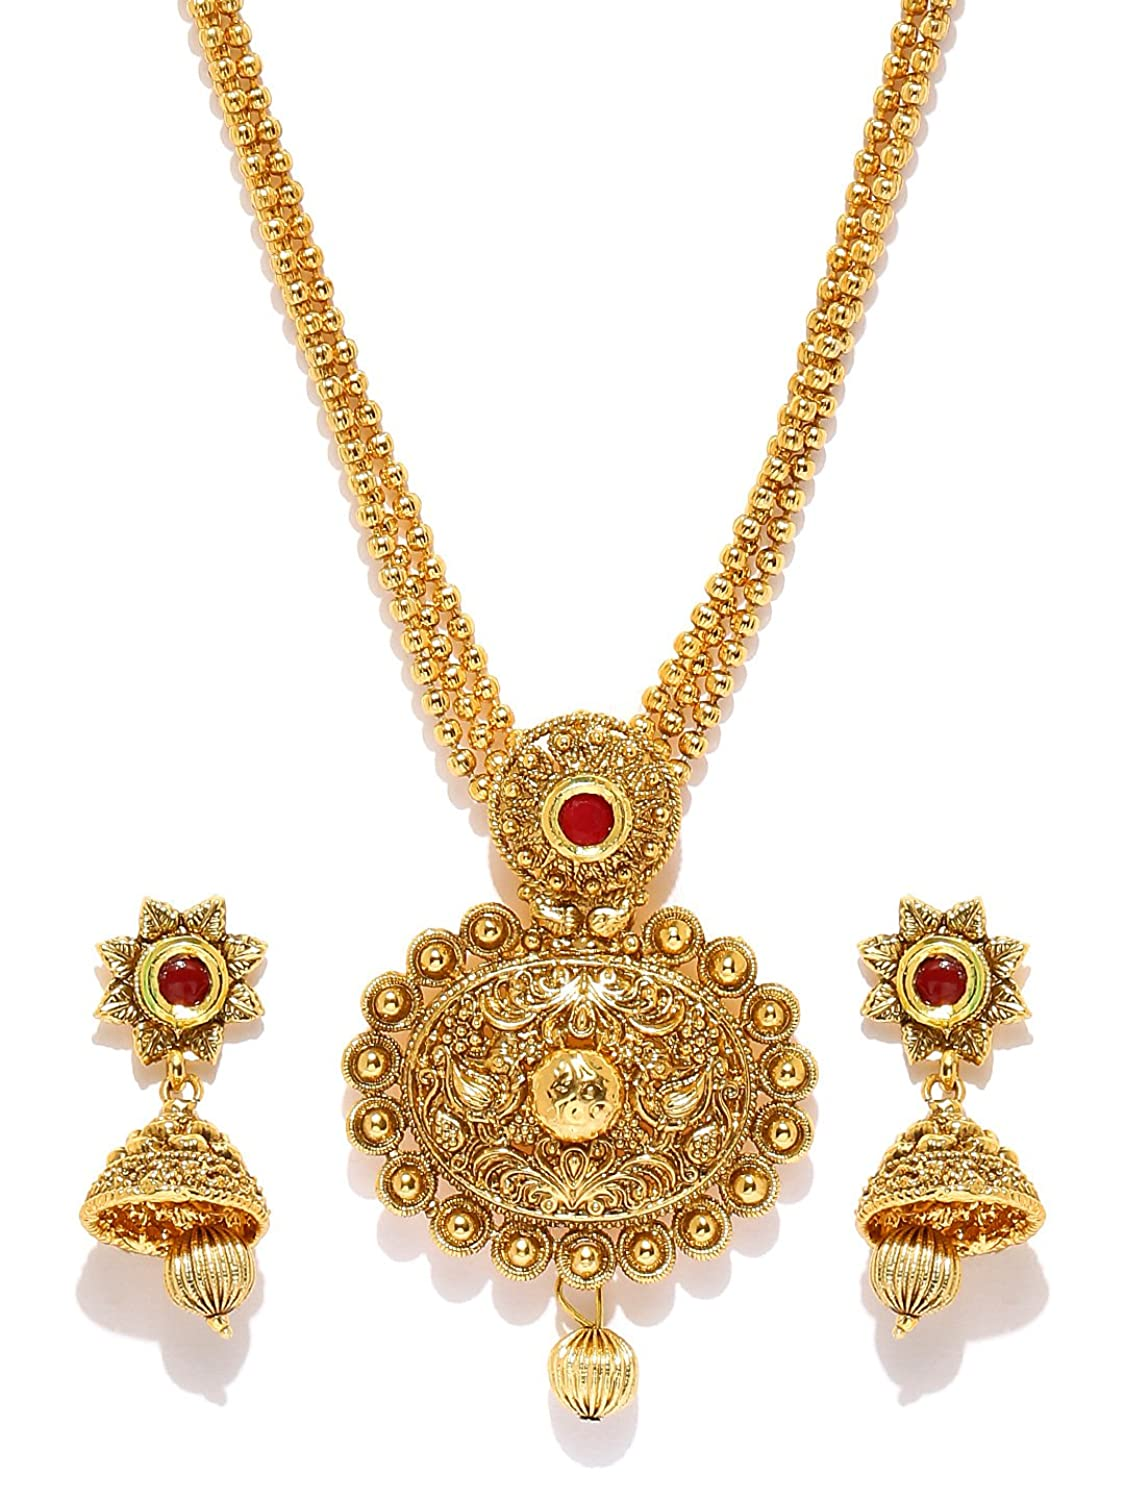 pendants buy store gold jewelers best pendant decorations totaram images diamond and chains to totaramjeweler jewellery online pinterest temple indian on jewelry like